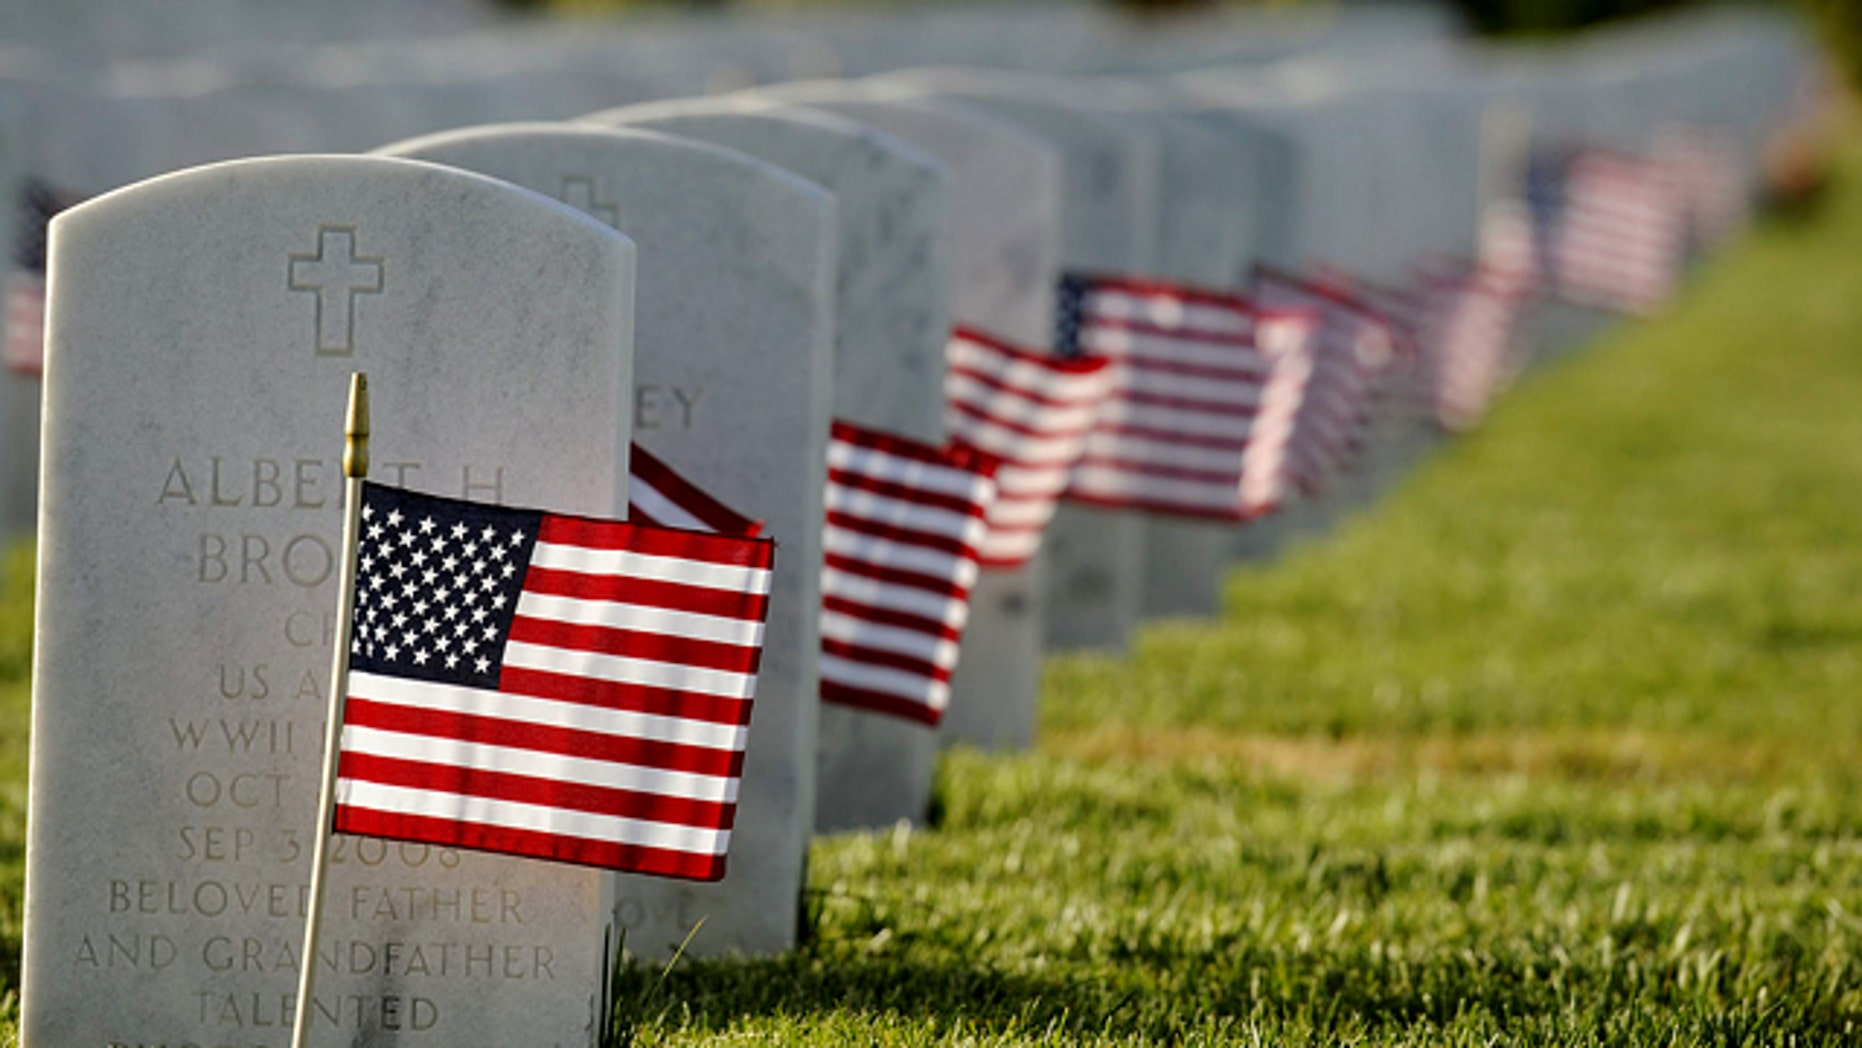 Members of several service organizations including Boy Scouts, Girl Scouts, 4-H and private citizens fanned out across the 561-acre Sacramento Valley National Cemetery in Dixon, Calif. to make sure every one of the grave nearly six thousand armed service members buried received a flag the on Thursday, May 27, 2010 in preparation for Monday's Memorial Day Service at the VA Cemetery.(AP Photo/The Reporter, Joel Rosenbaum) MANDATORY CREDIT; MAGS OUT; NO SALES